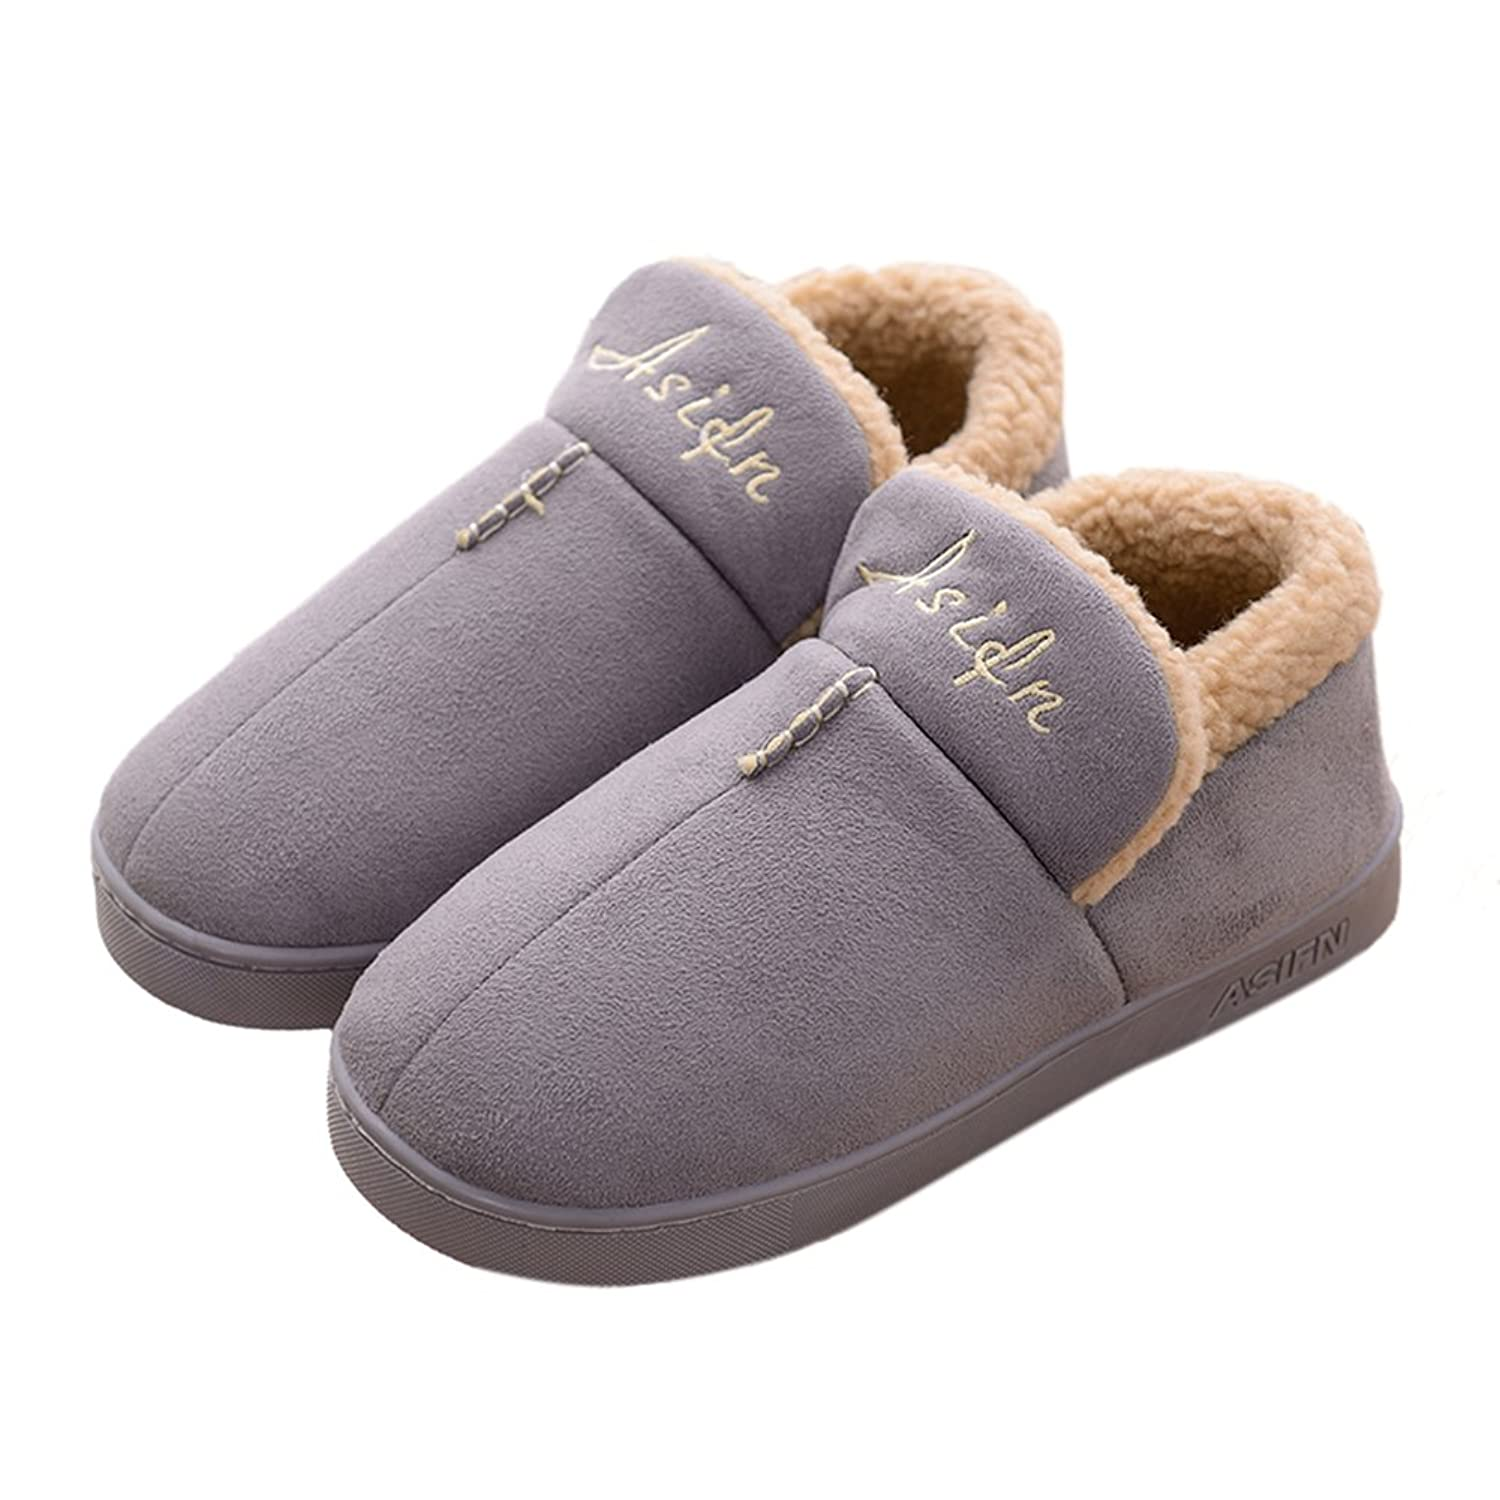 Agowoo Couples Plush Indoor Bedroom House Slippers Boots